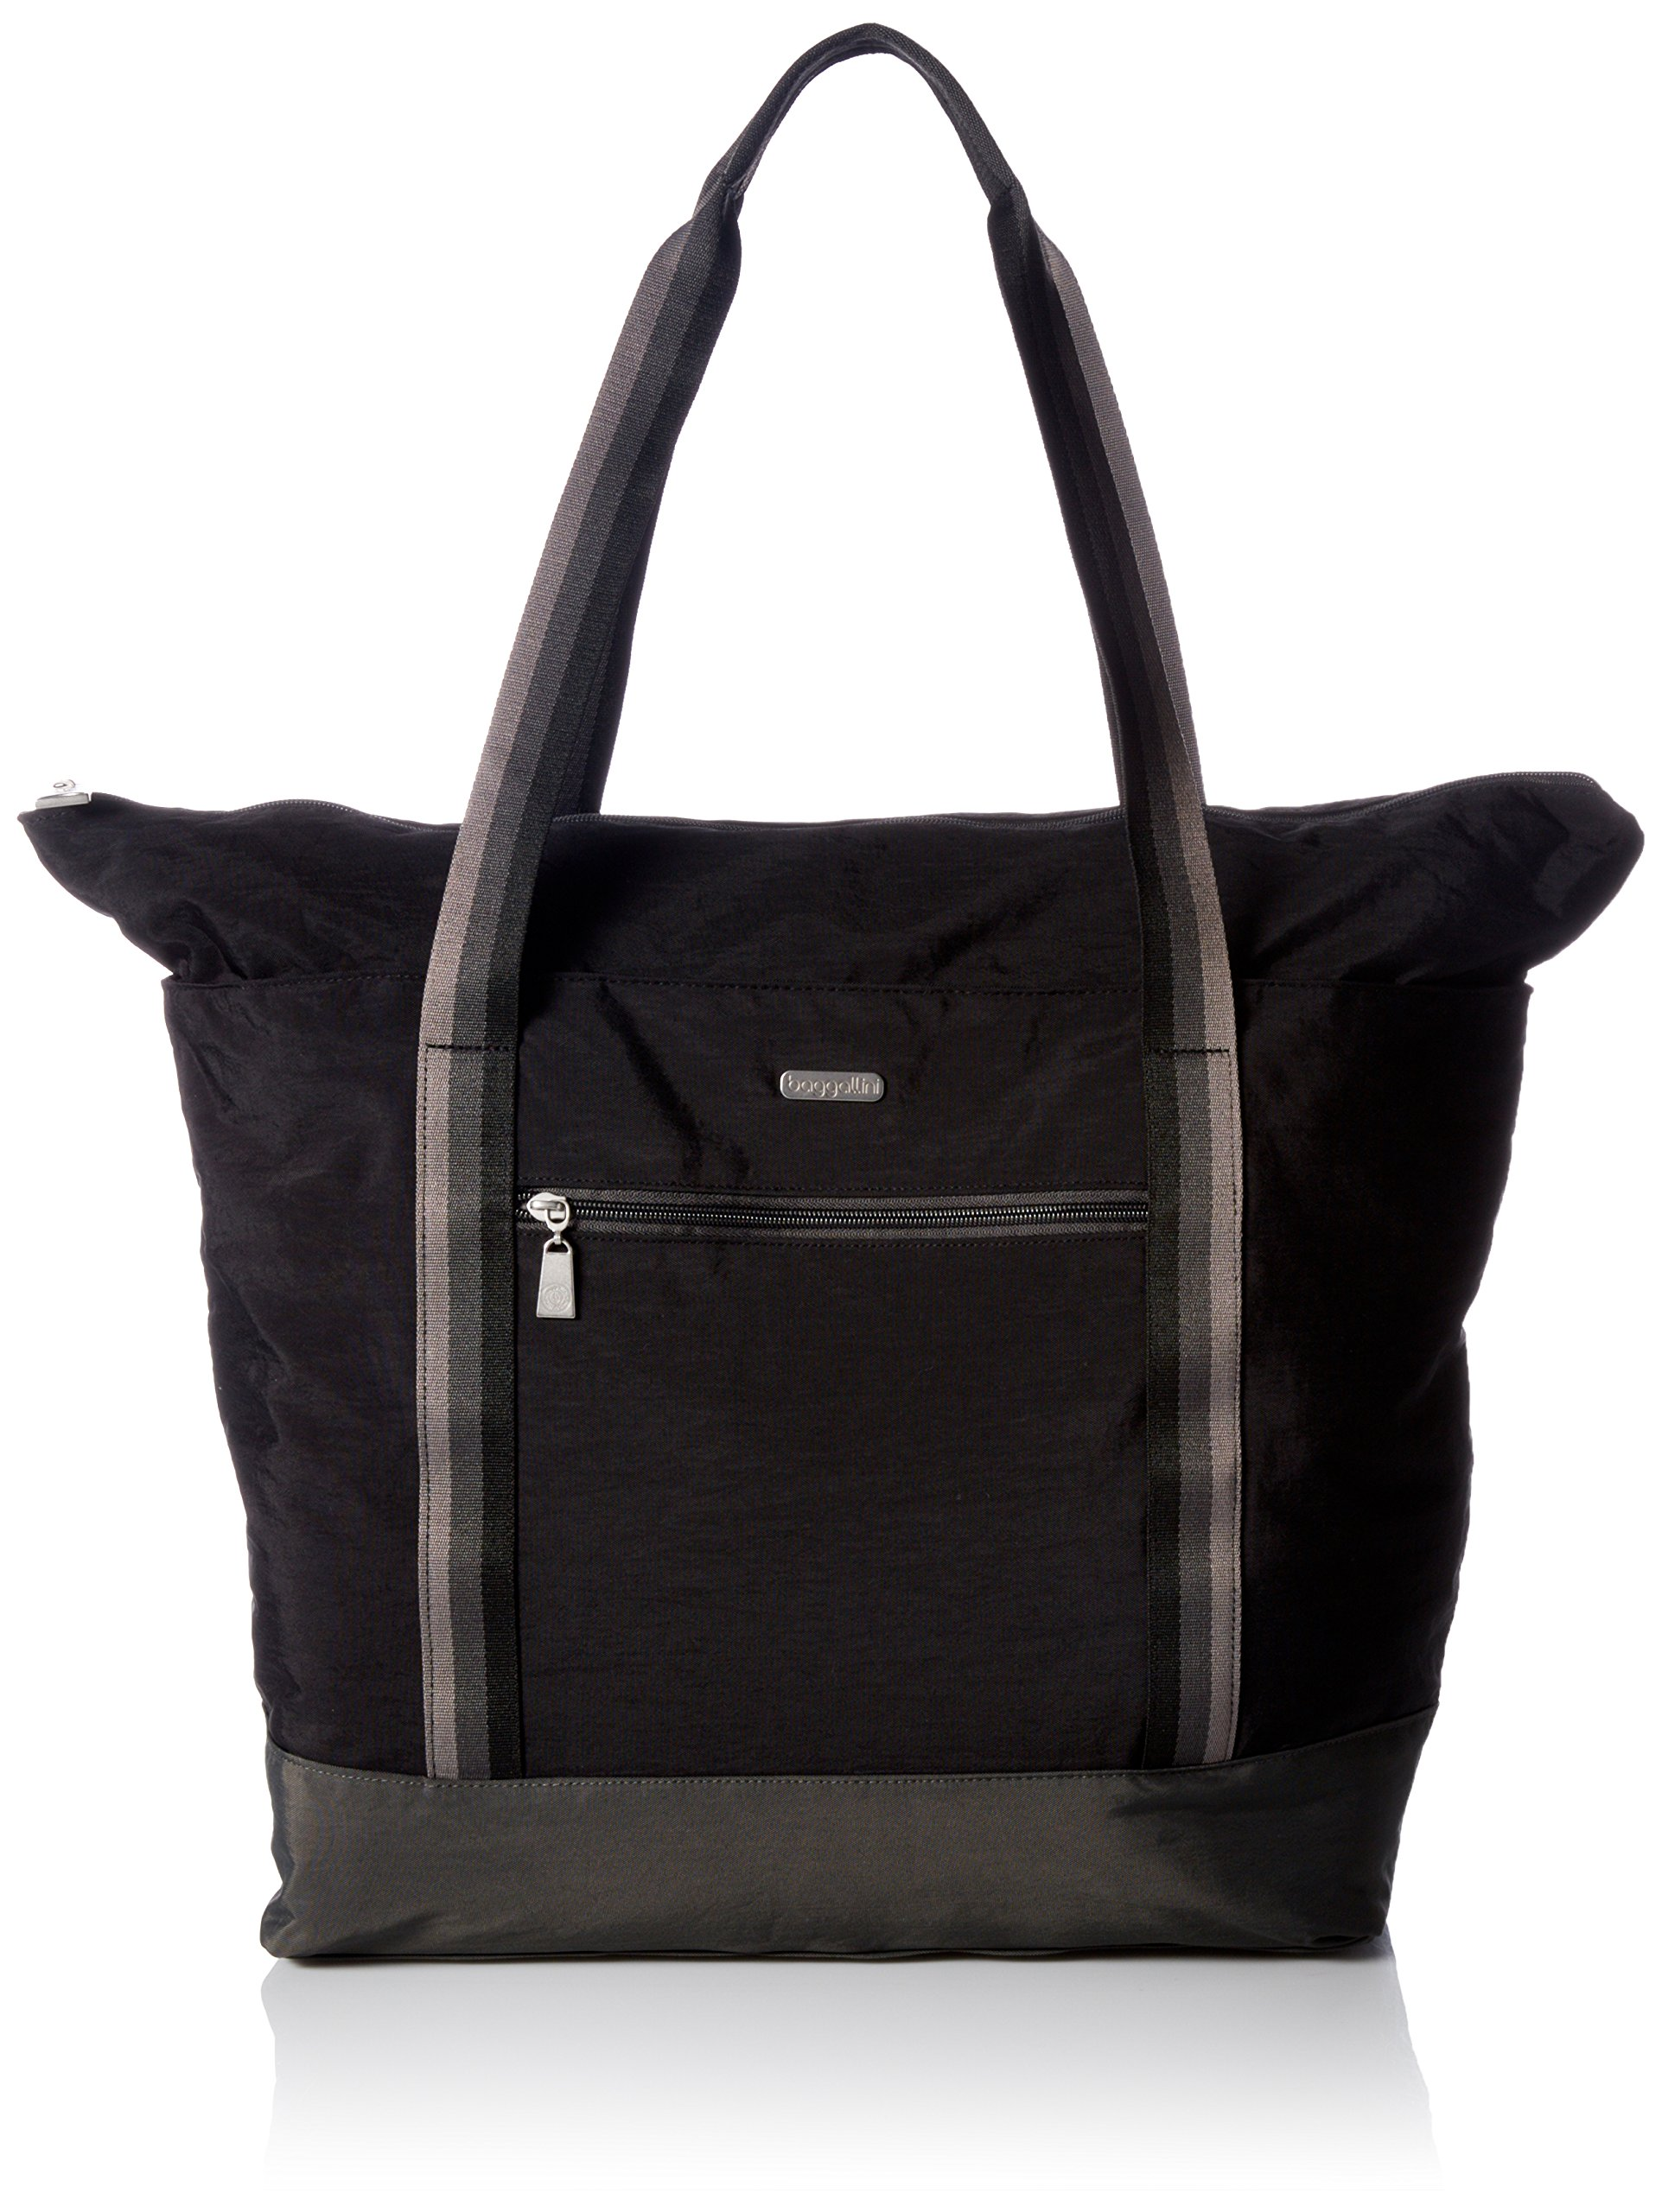 Baggallini Women's Fine Line Carryall, Black with Sand Lining